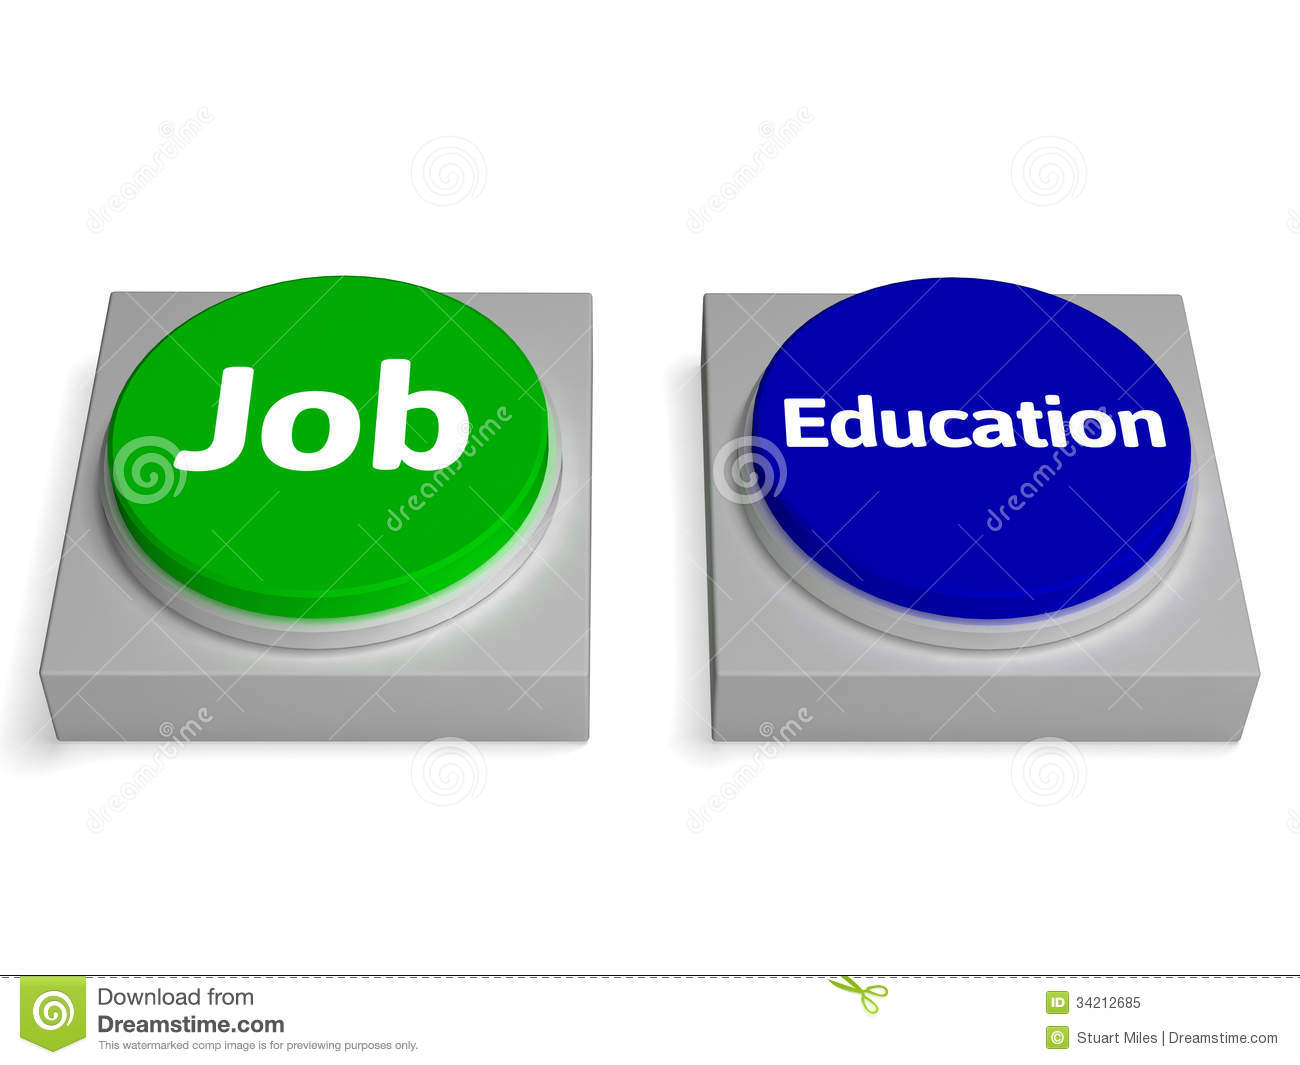 HOW TO GET JOBS IN UNIVERSITIES image